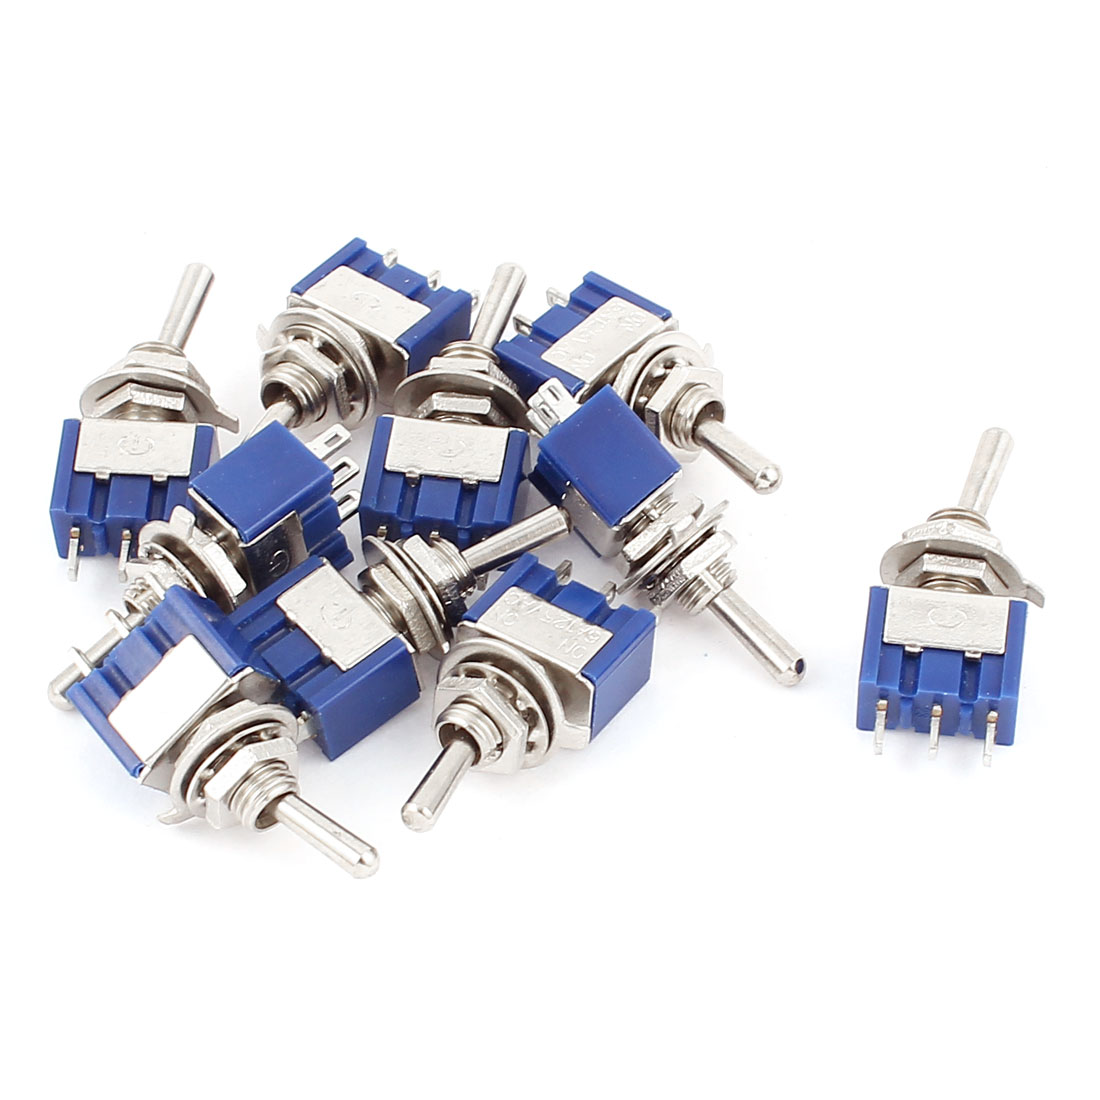 10Pcs AC 125V 6A Latching SPDT 2 Position ON-ON Toggle Switch